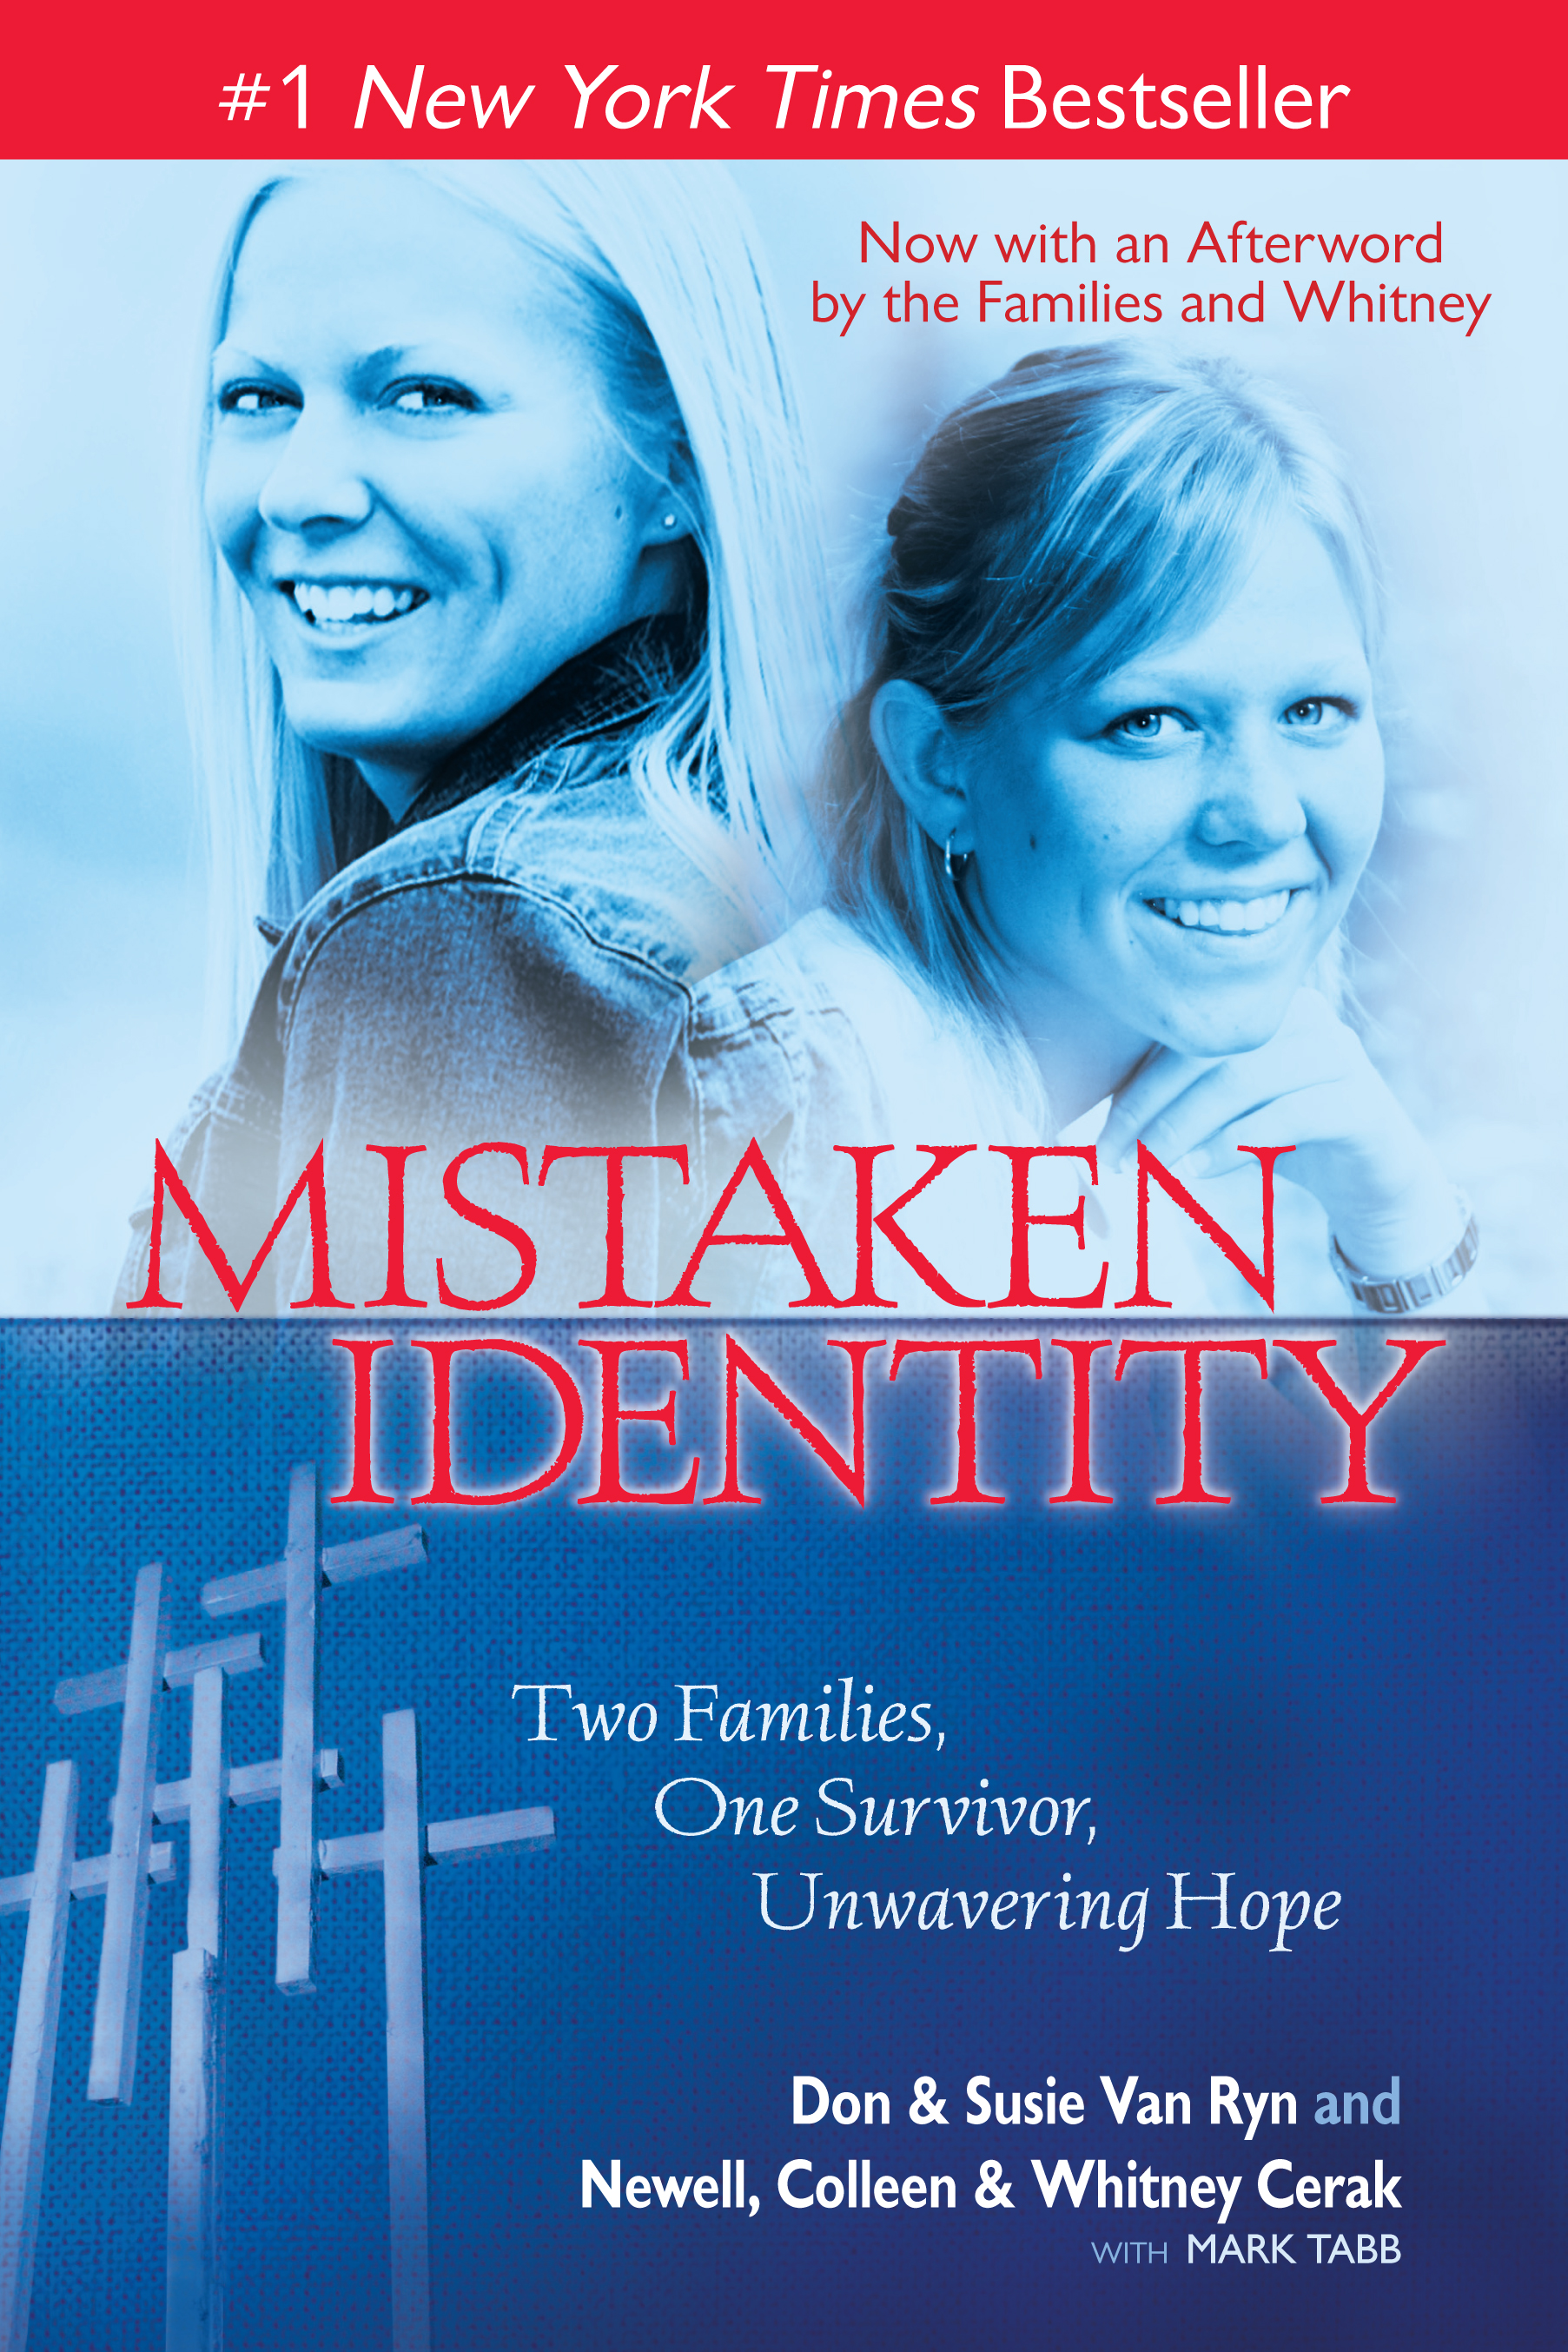 mistaken identity book by don susie van ryn newell colleen cvr9781439153550 9781439153550 hr mistaken identity